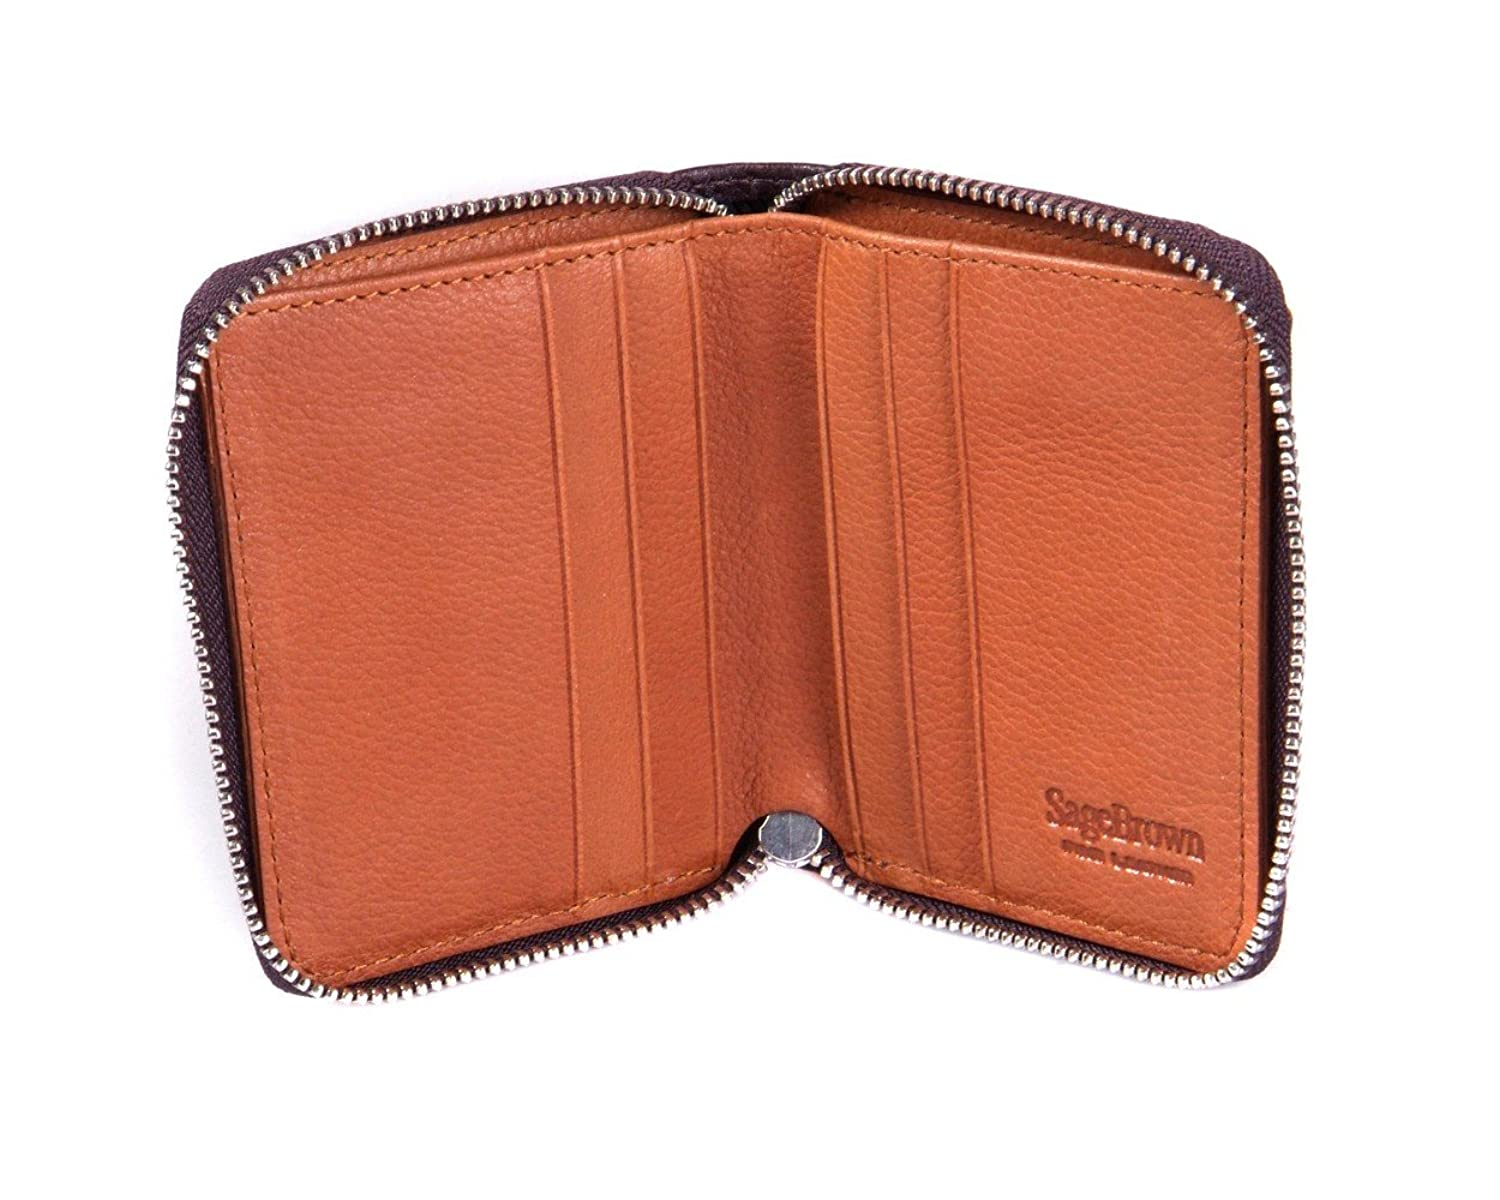 SAGEBROWN Zip Around Wallet